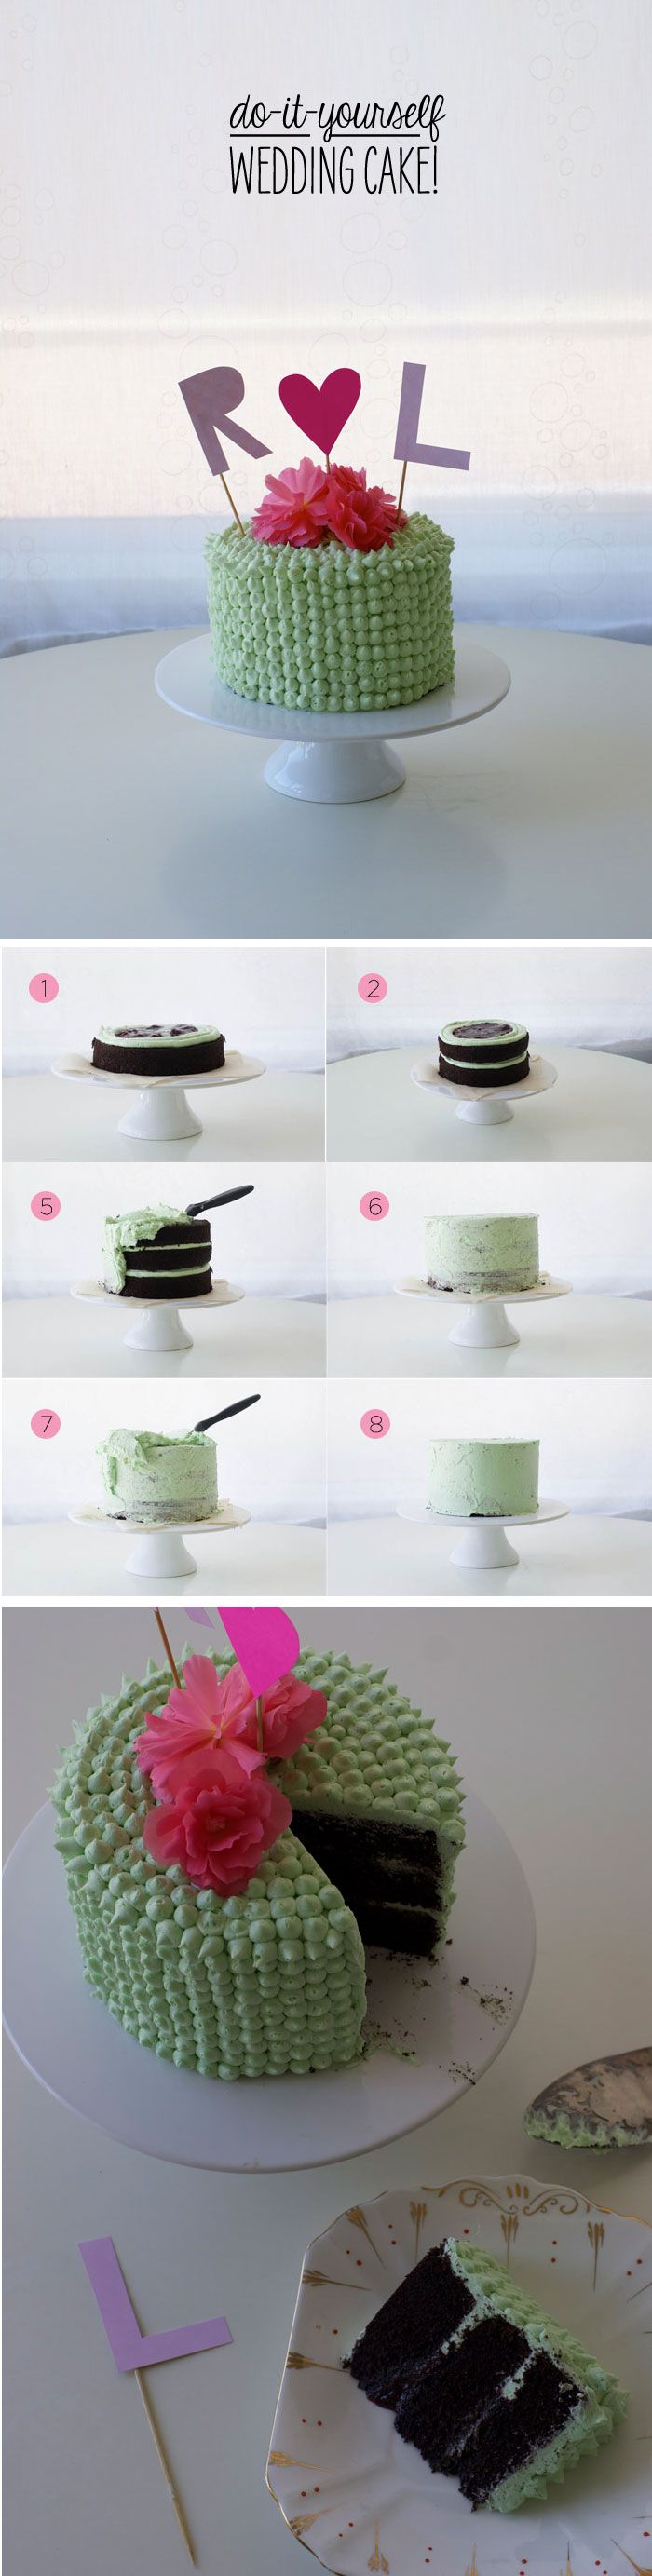 Do-it-yourself Wedding Cake! Make your best friend's (or even your own) wedding cake with this simple decorating tutorial #DIY #Wedding #Cake  (By Lyndsay Sung of Coco Cake Land for Poppytalk).